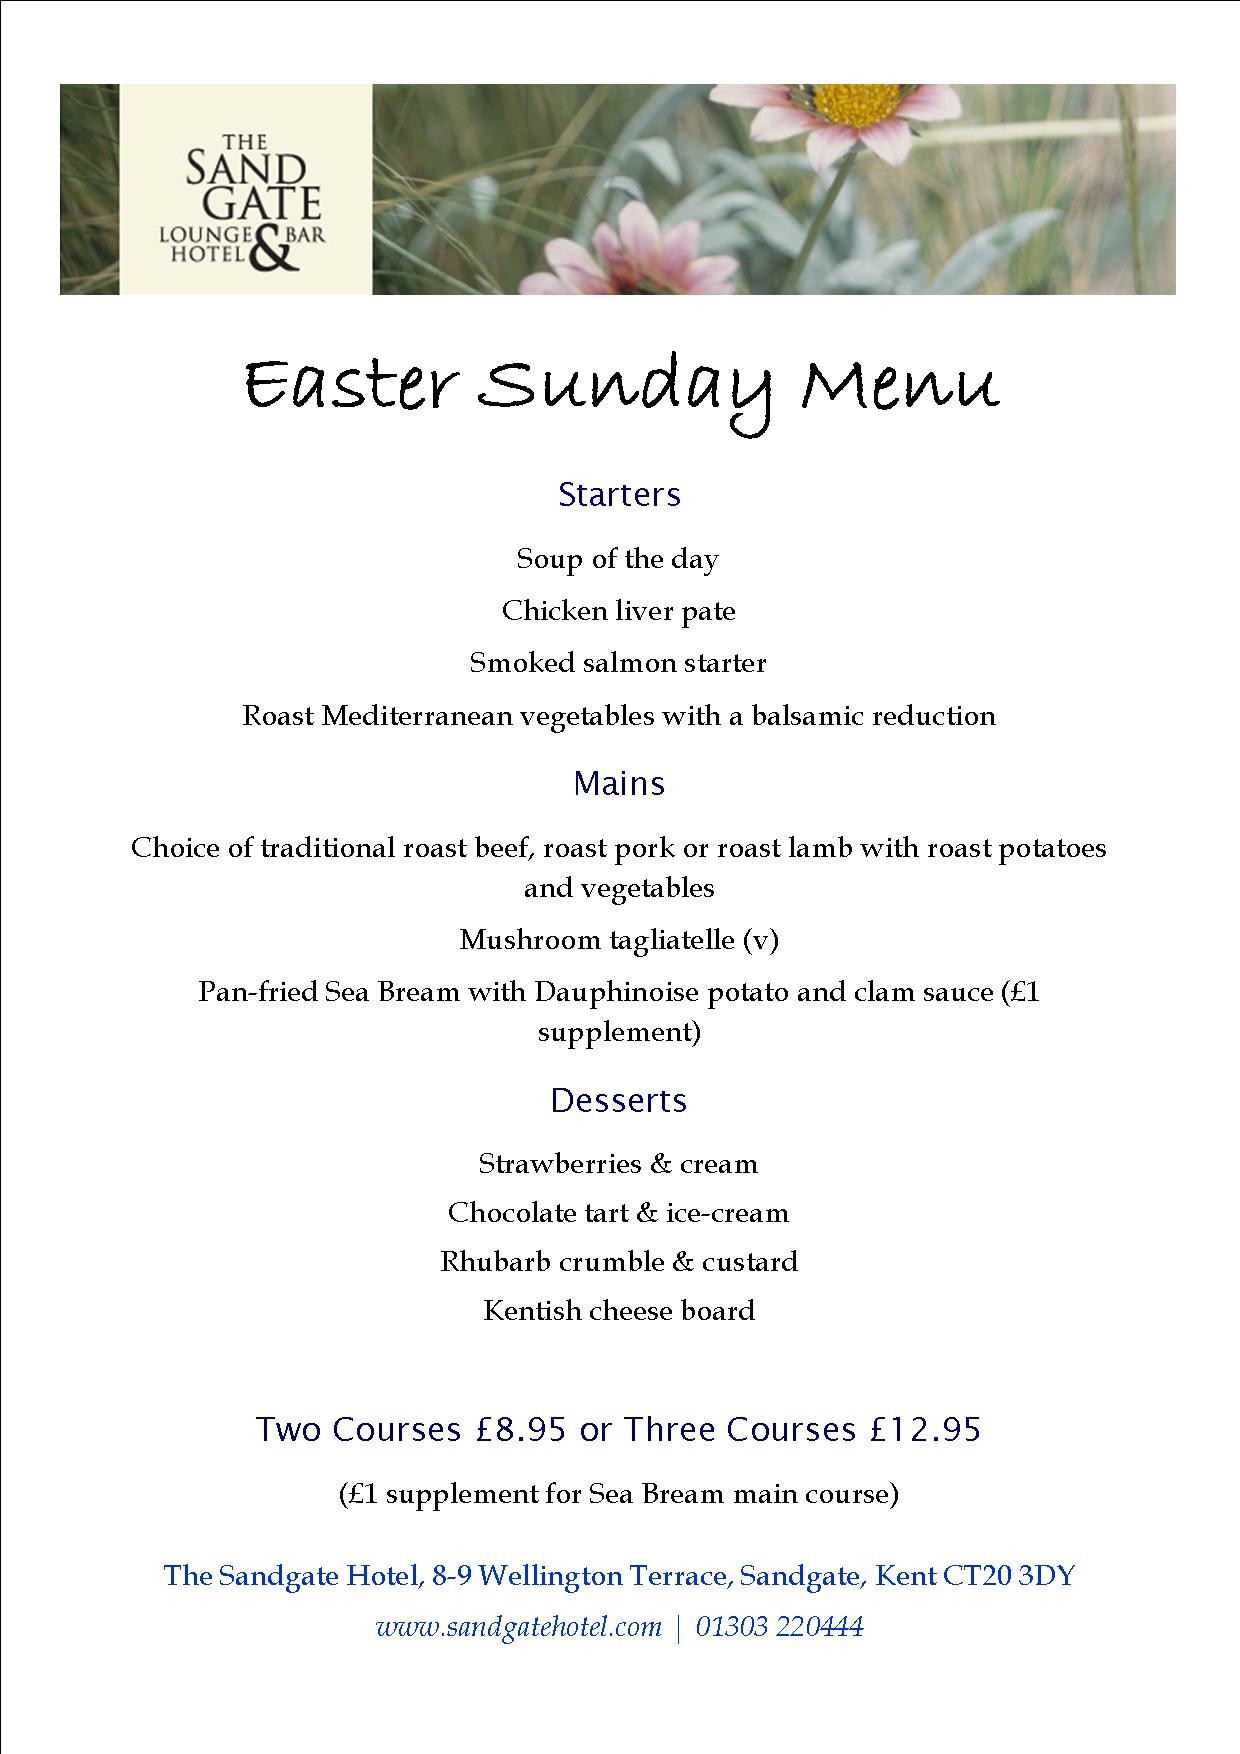 Easter Sunday Dinner Menu  Easter Sunday Menu – The Sandgate Hotel